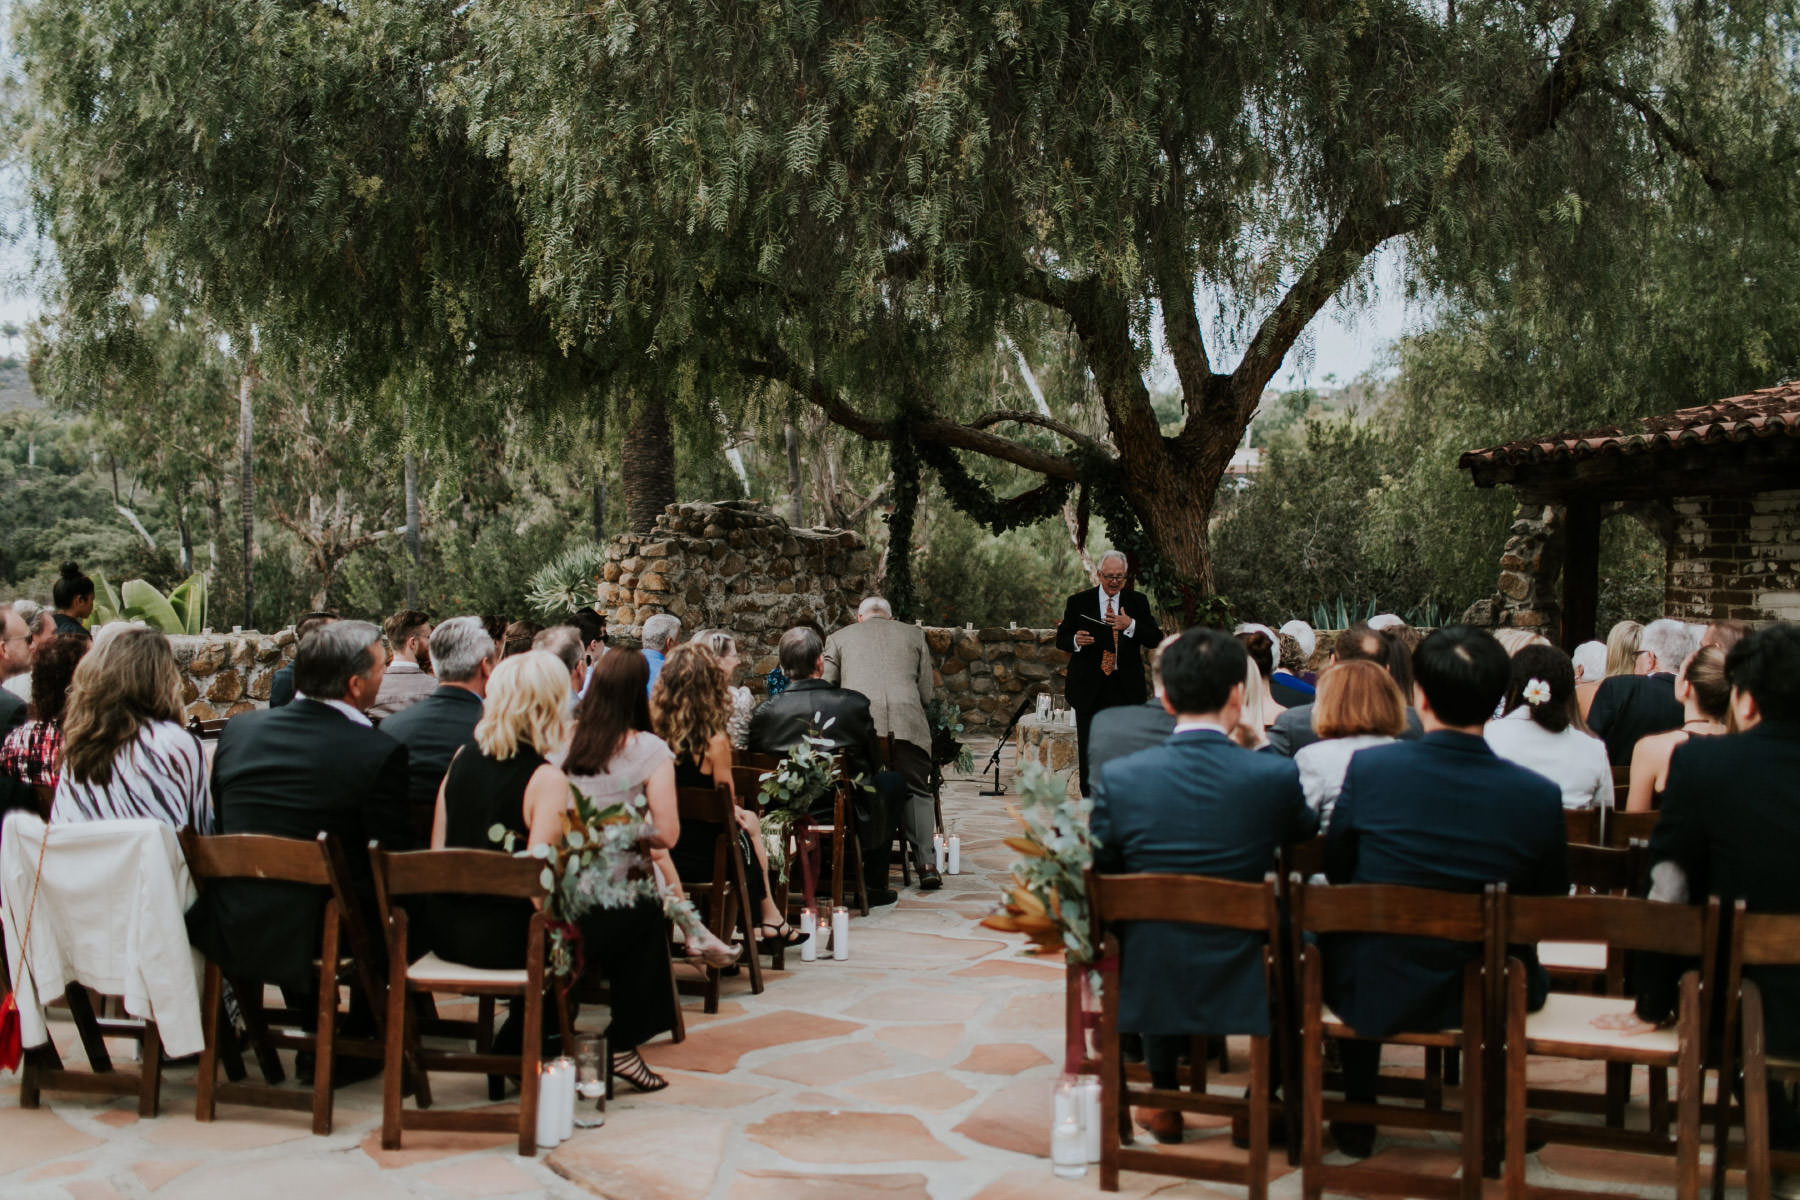 Guests witnessing ceremony at Leo Carrillo Ranch wedding